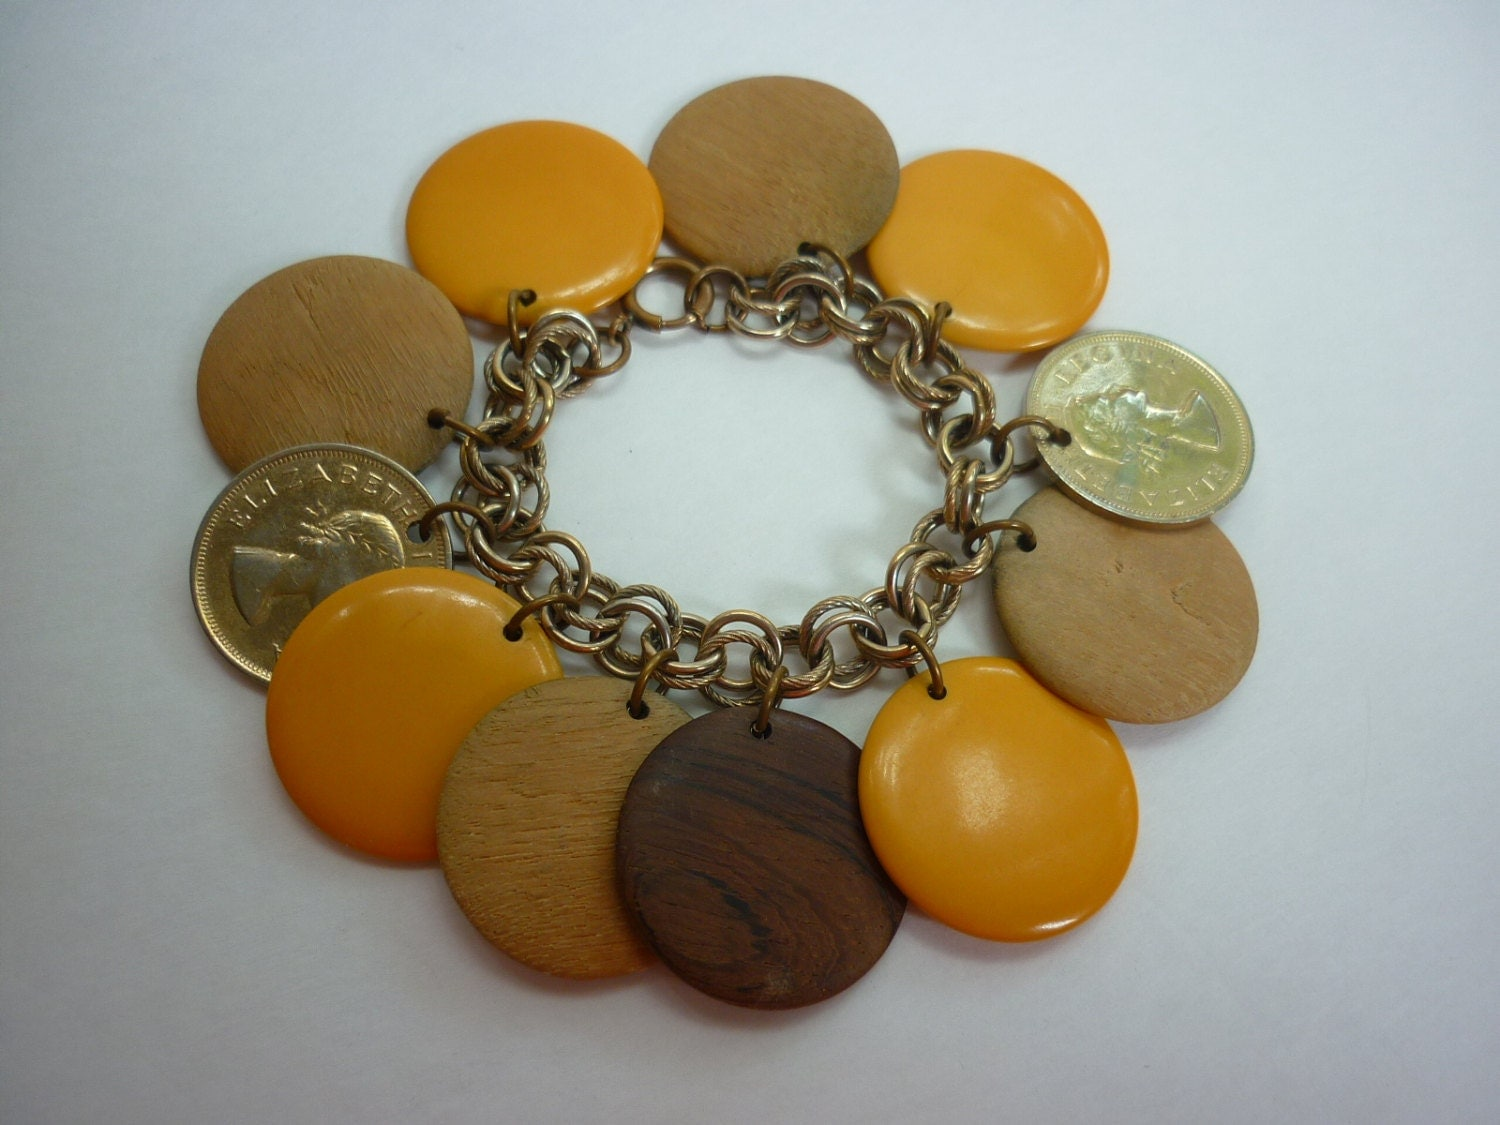 50s Dangling Disc Charm Bracelet w Bakelite / Wood / Coins CHUNKY Mid Century - decotodiscovintage